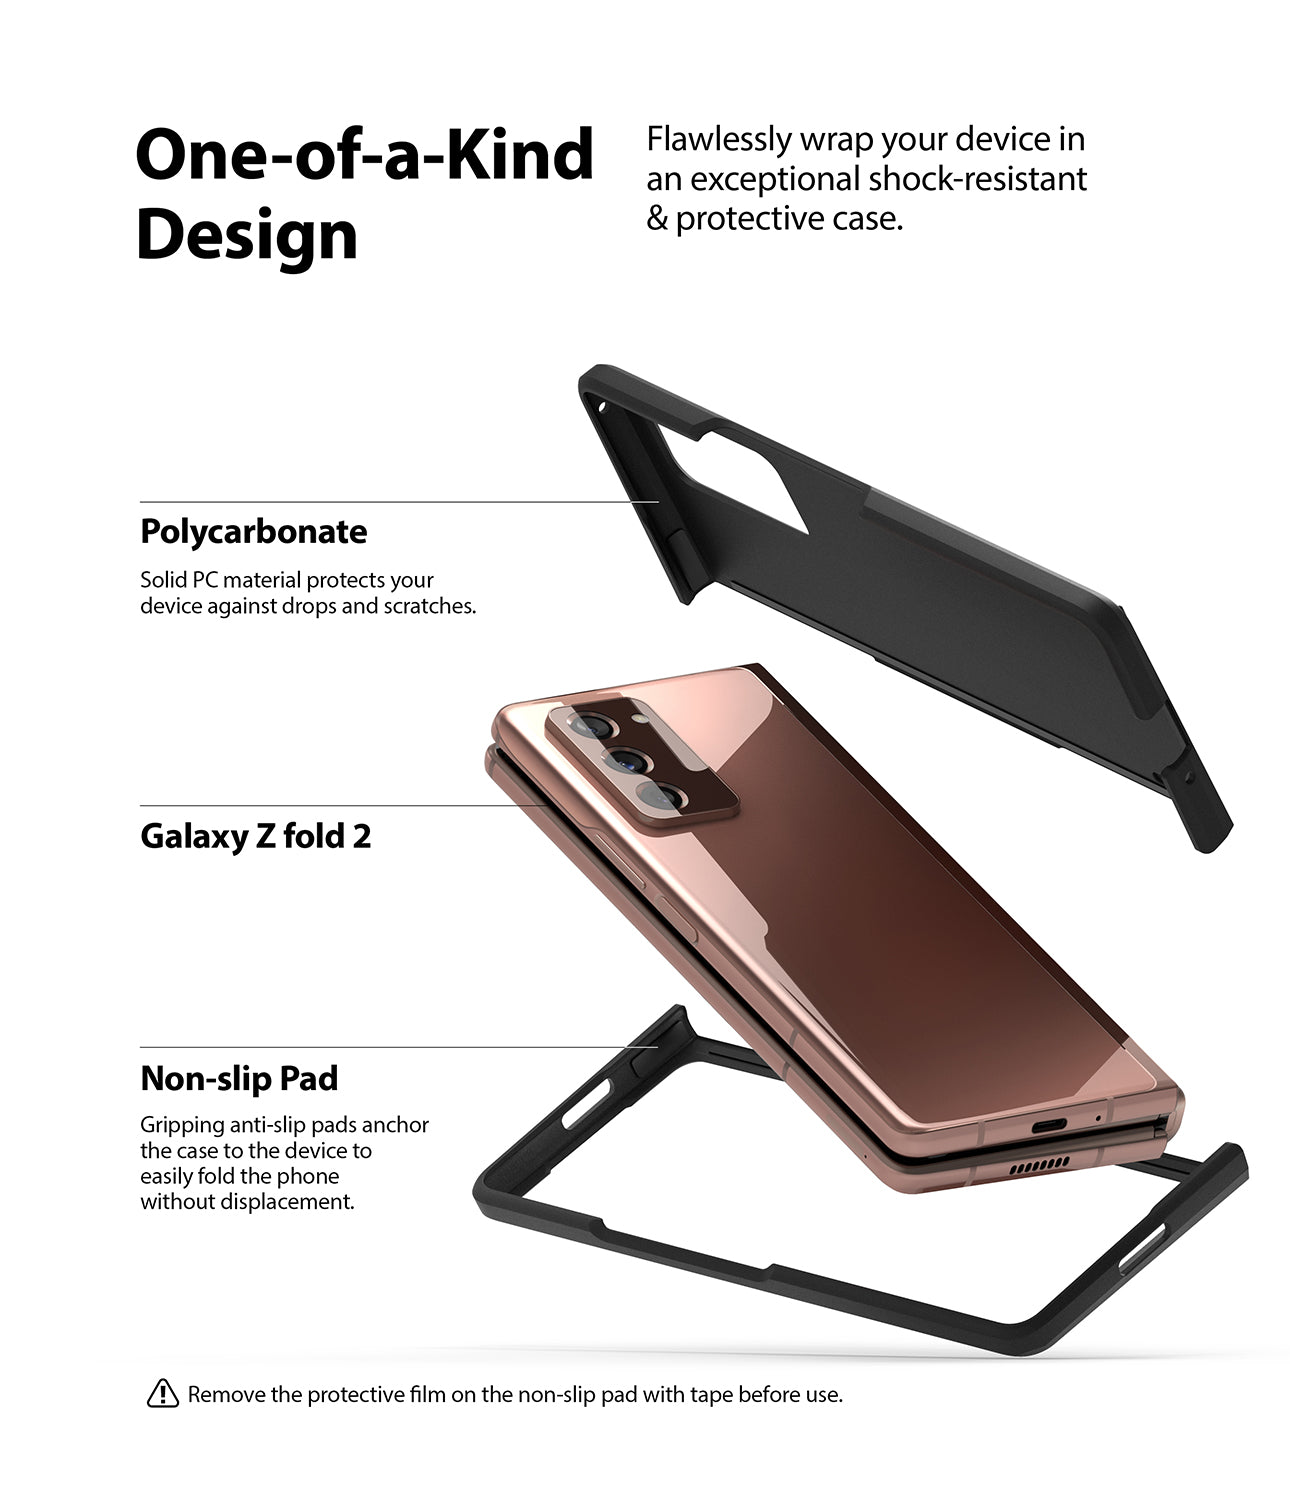 flawlessly wrap your device in an exceptional shock-resistant and protective case